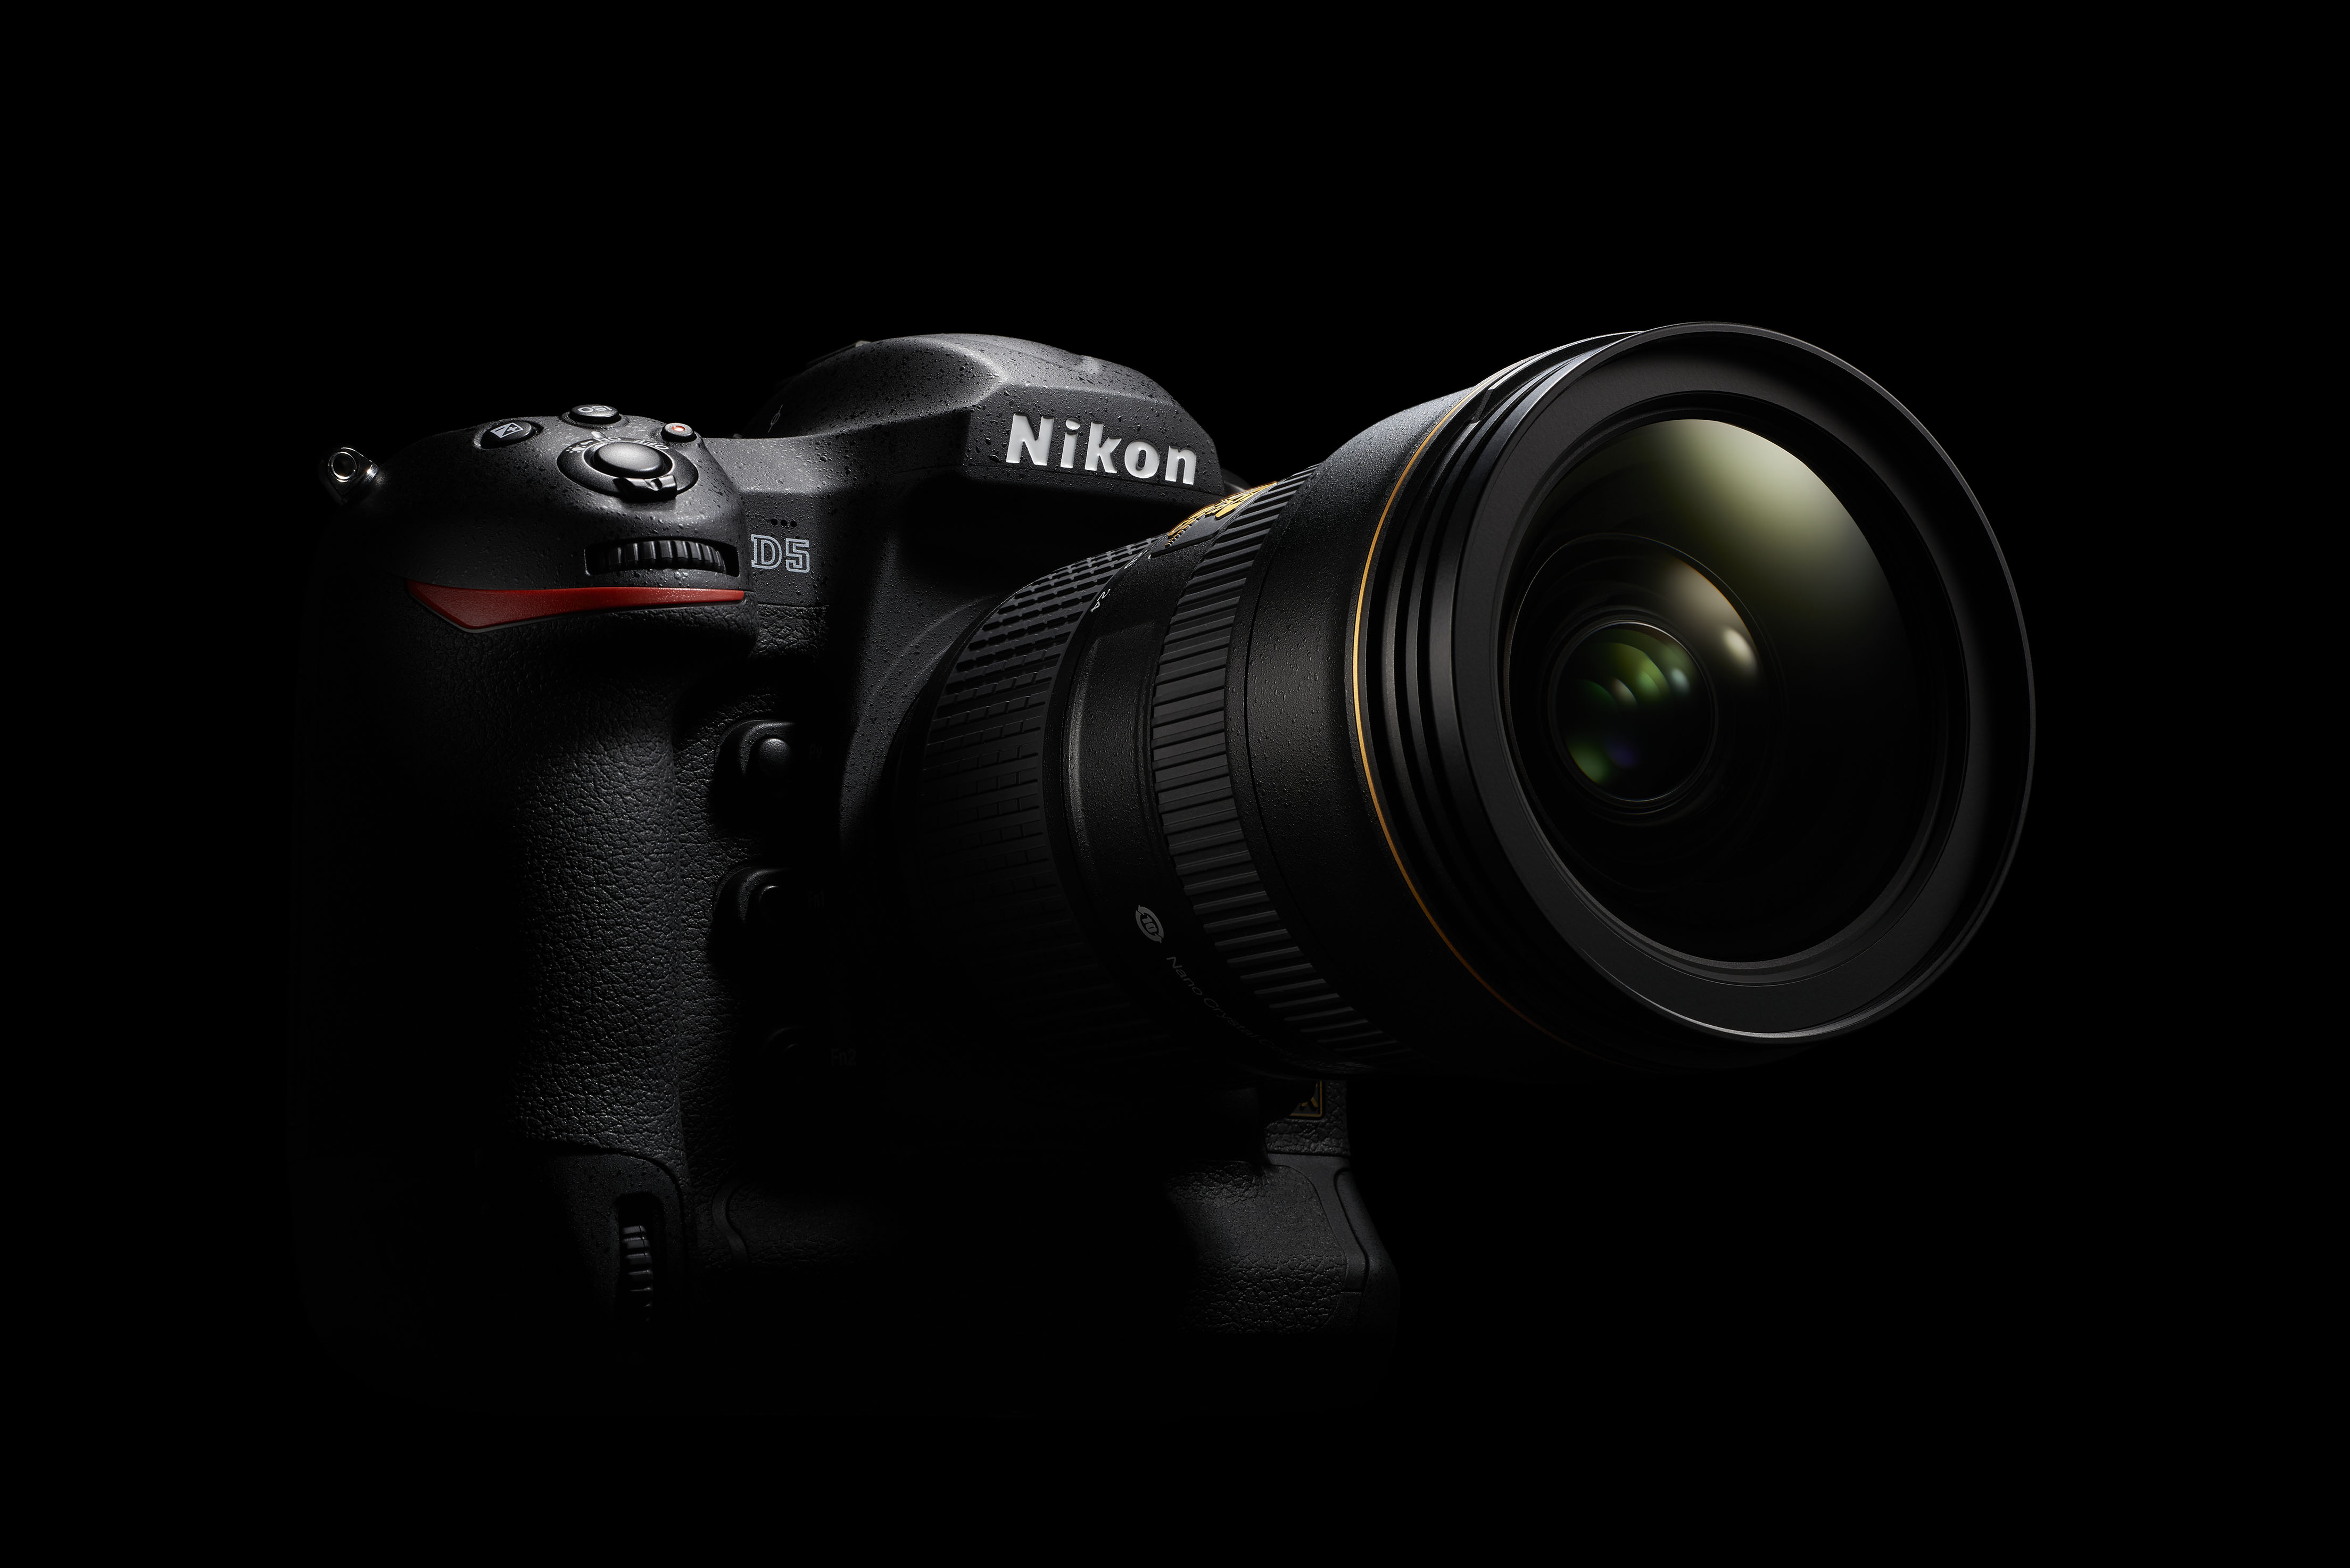 Nikon D5 in front of black background.